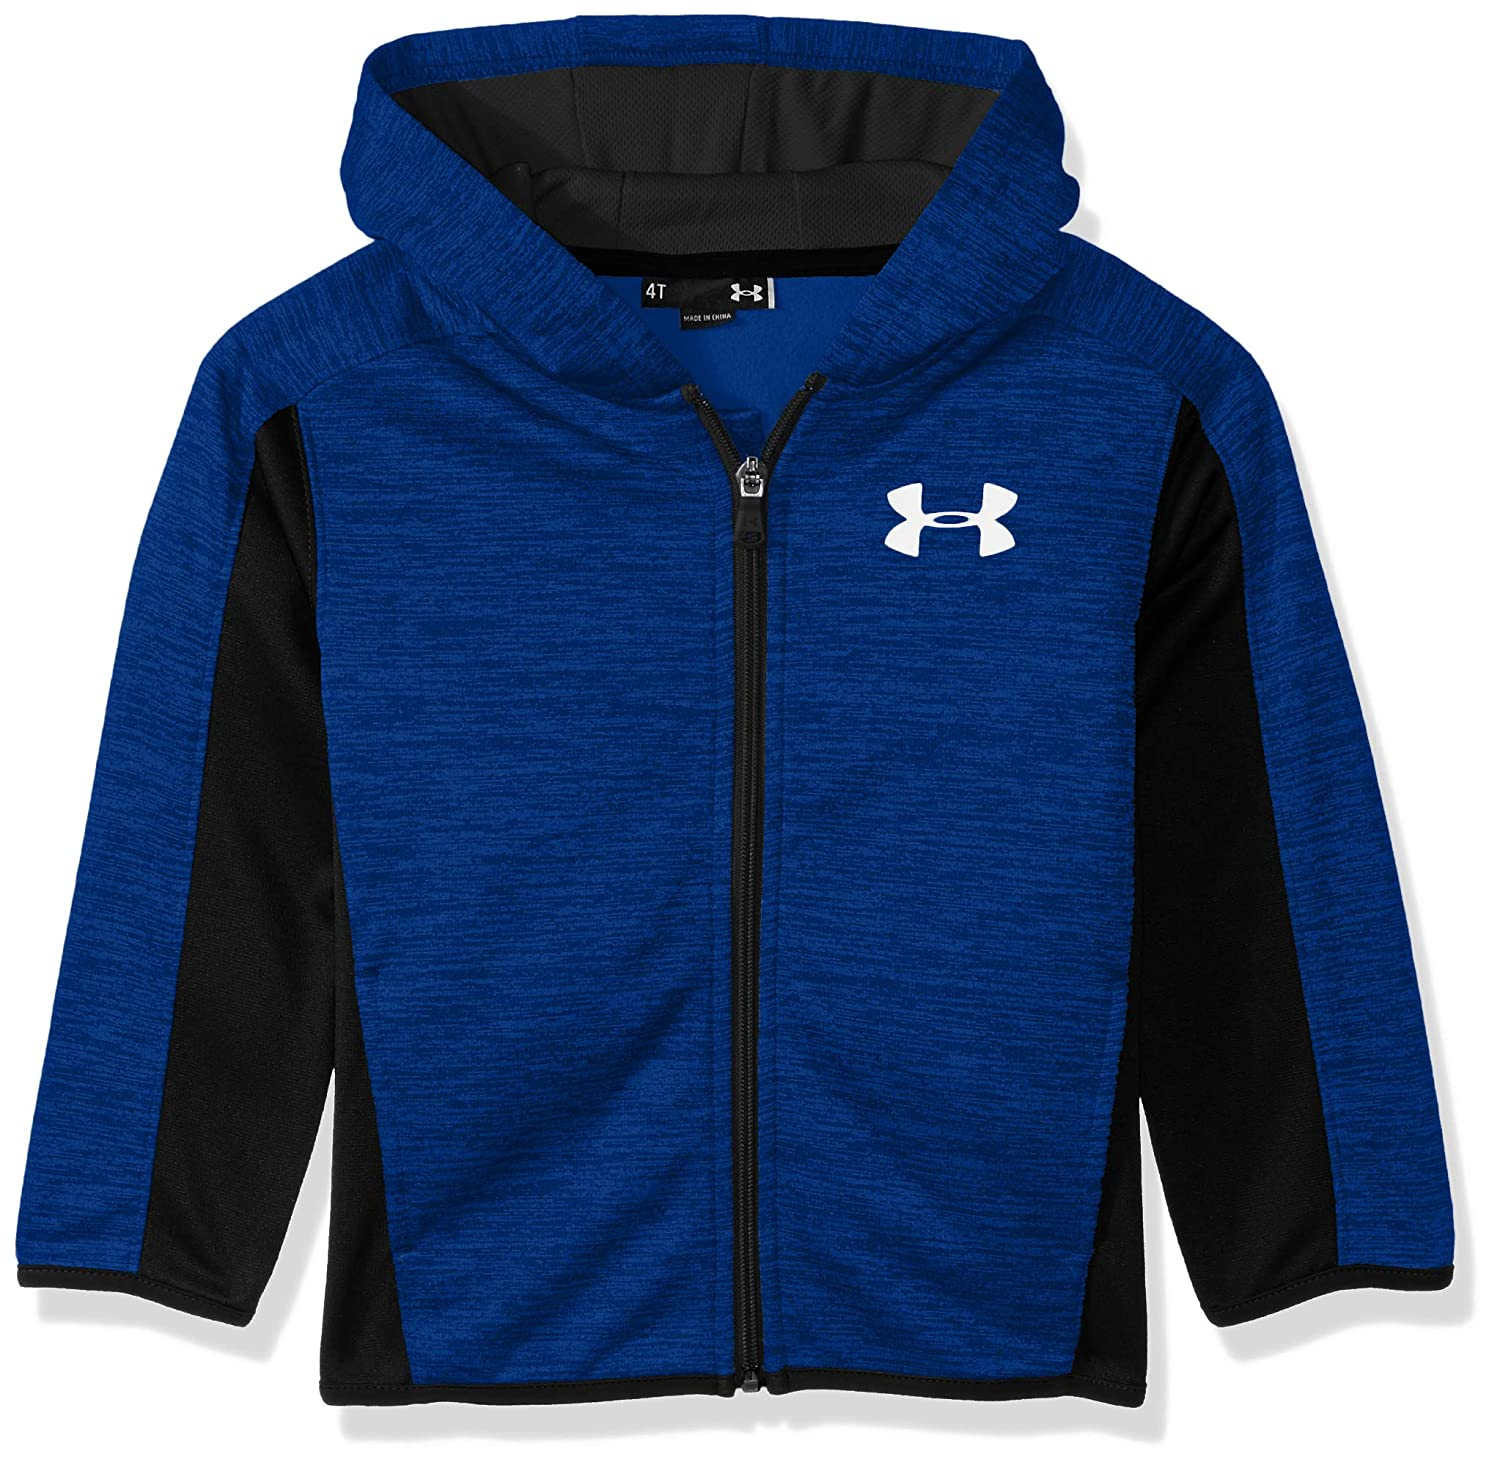 Under Armour Boys' Zip Up Hoody